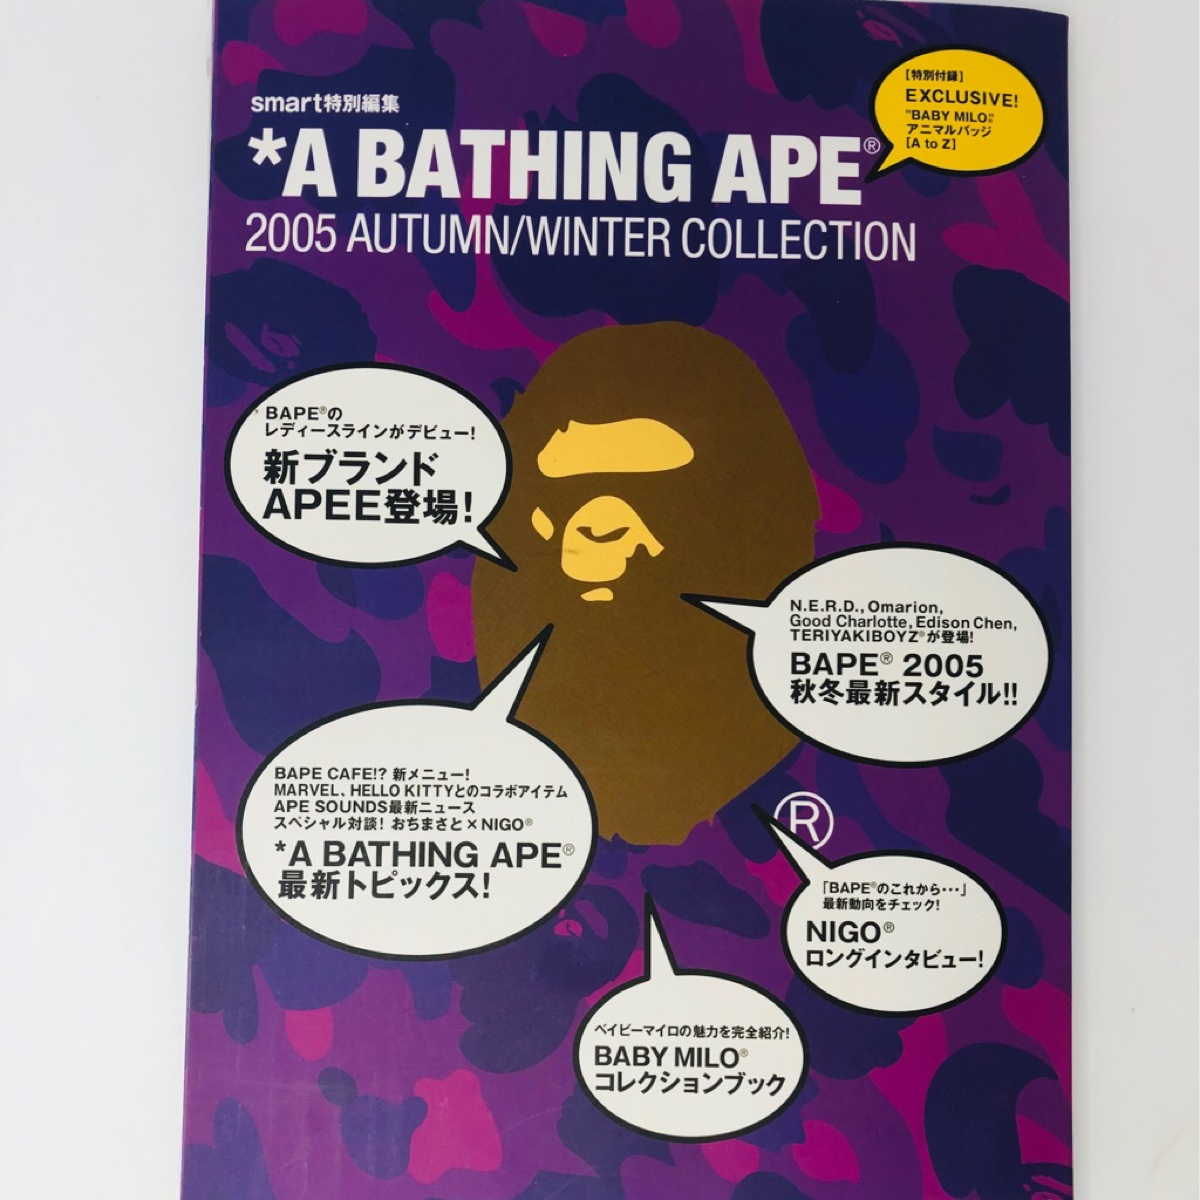 A Bathing Ape 2005 Autumn/Winter Collection Magazine With Full Badge Set